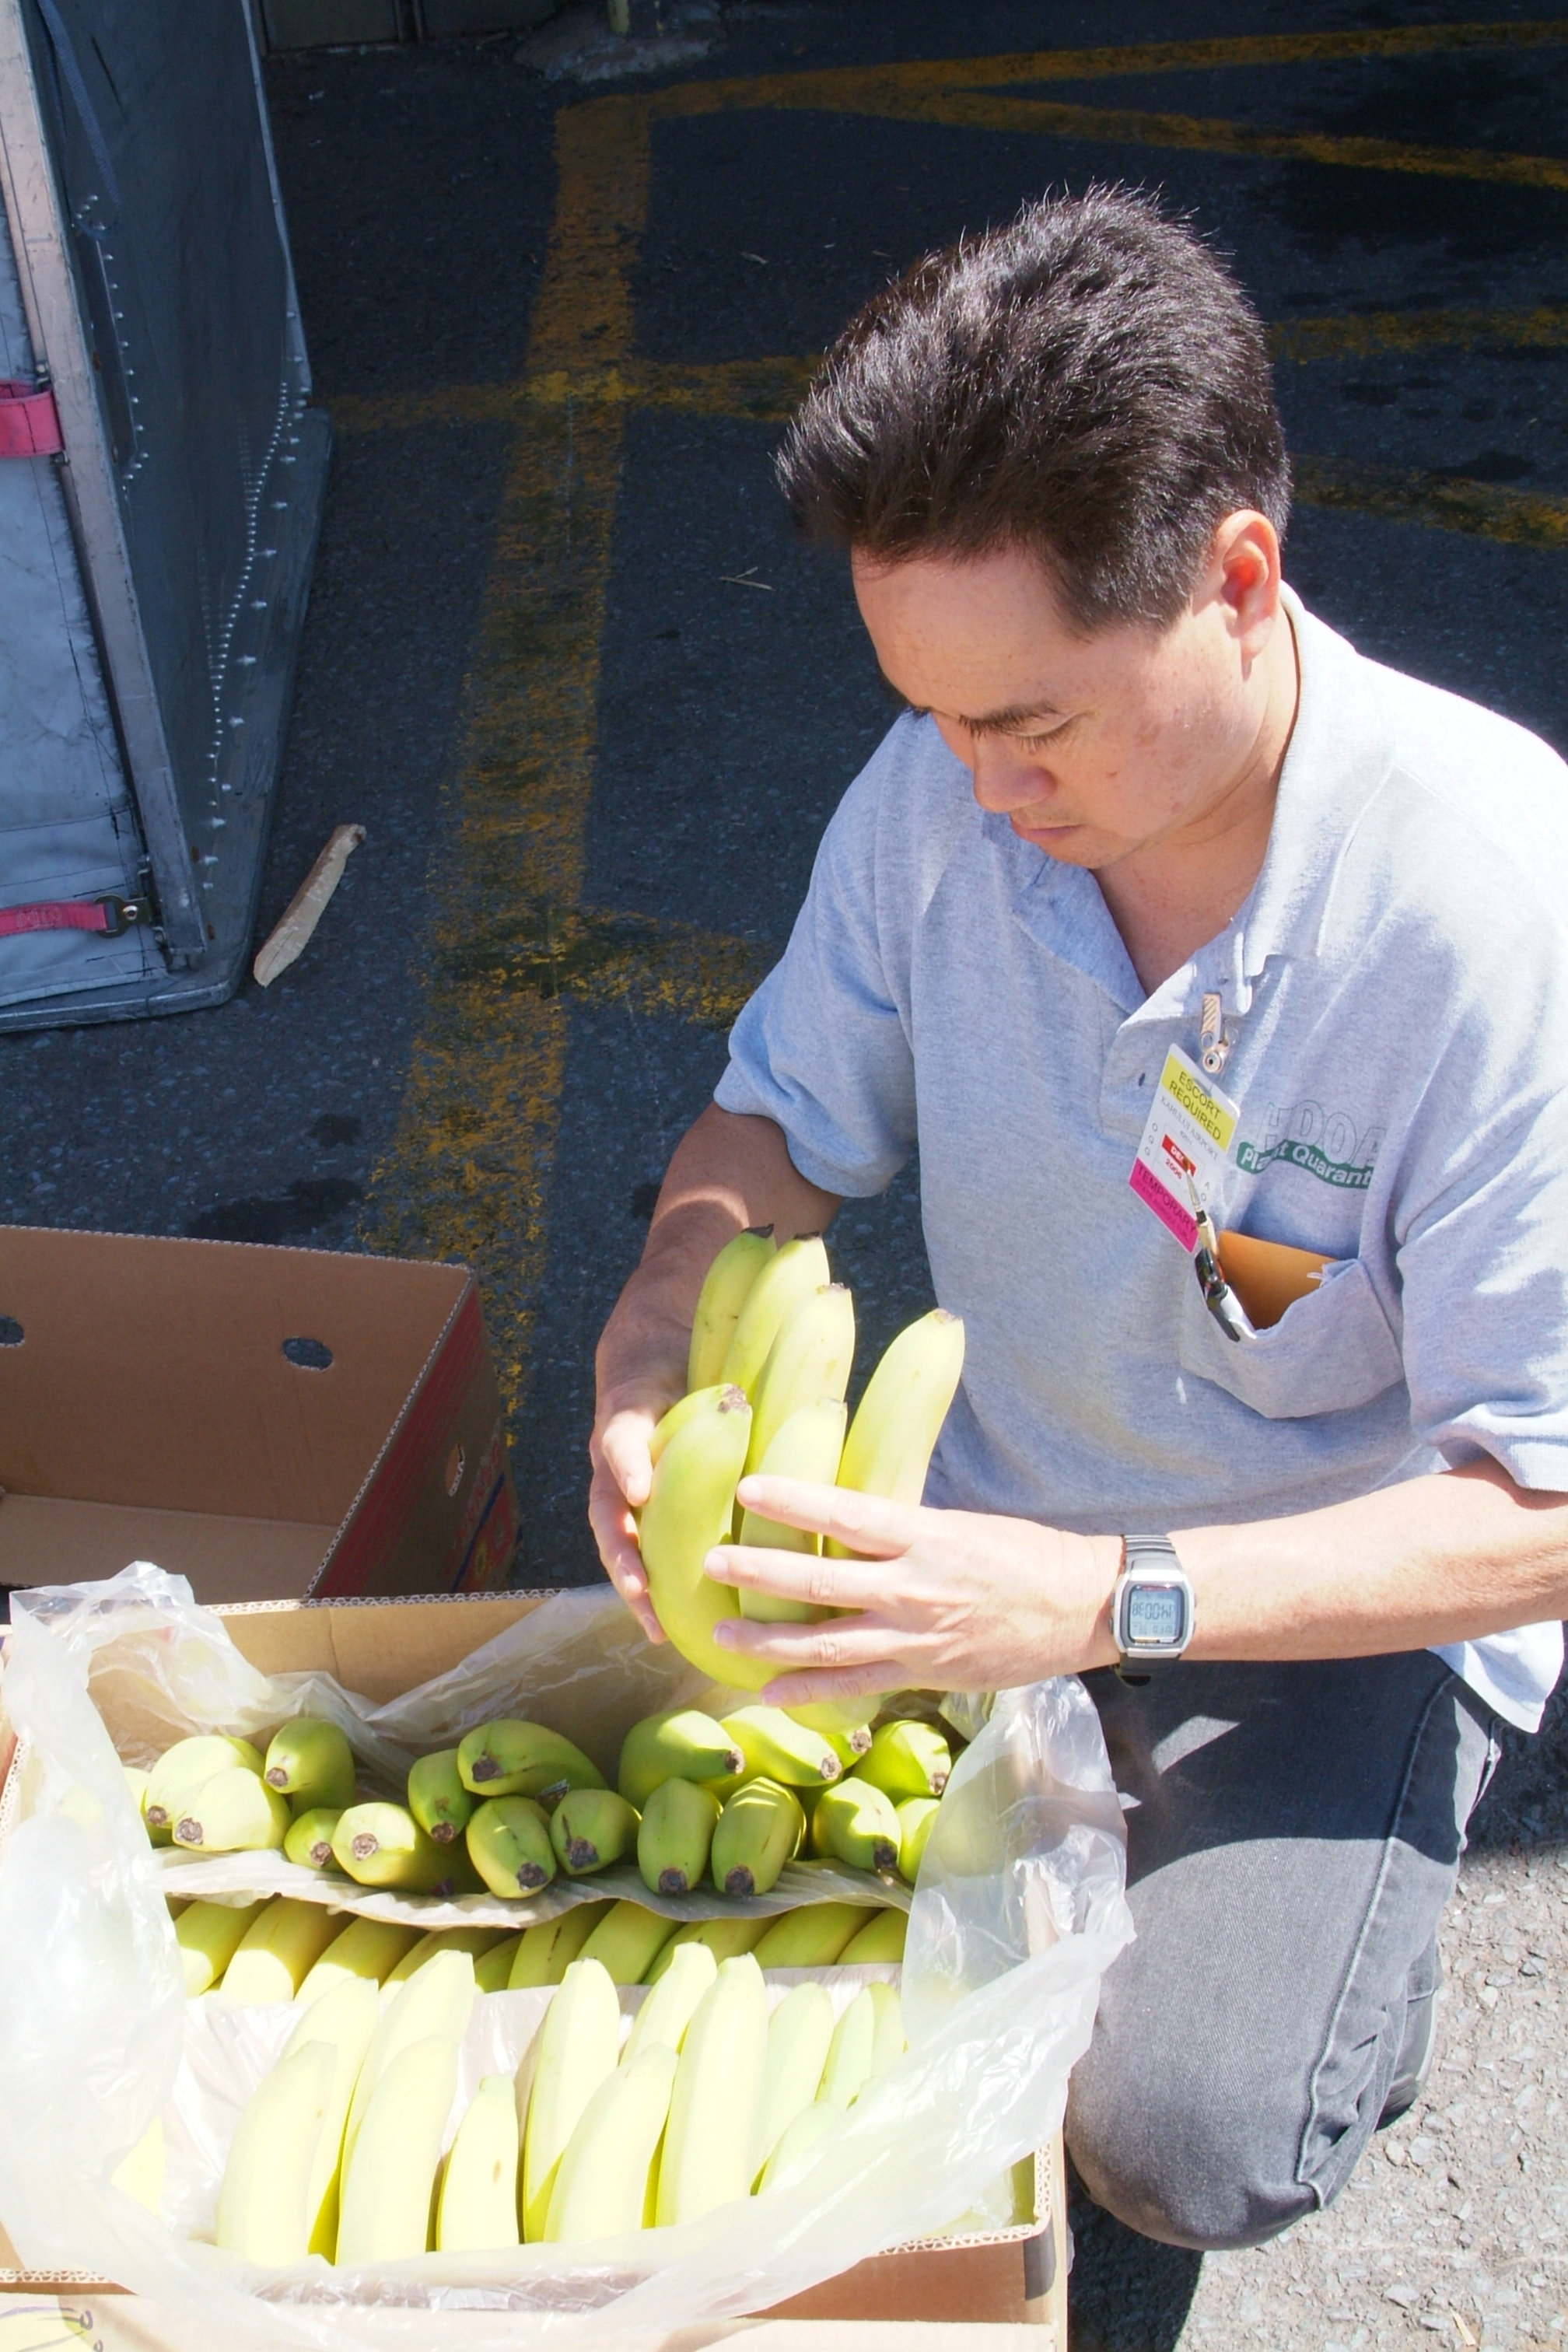 Inspecting imported produce.